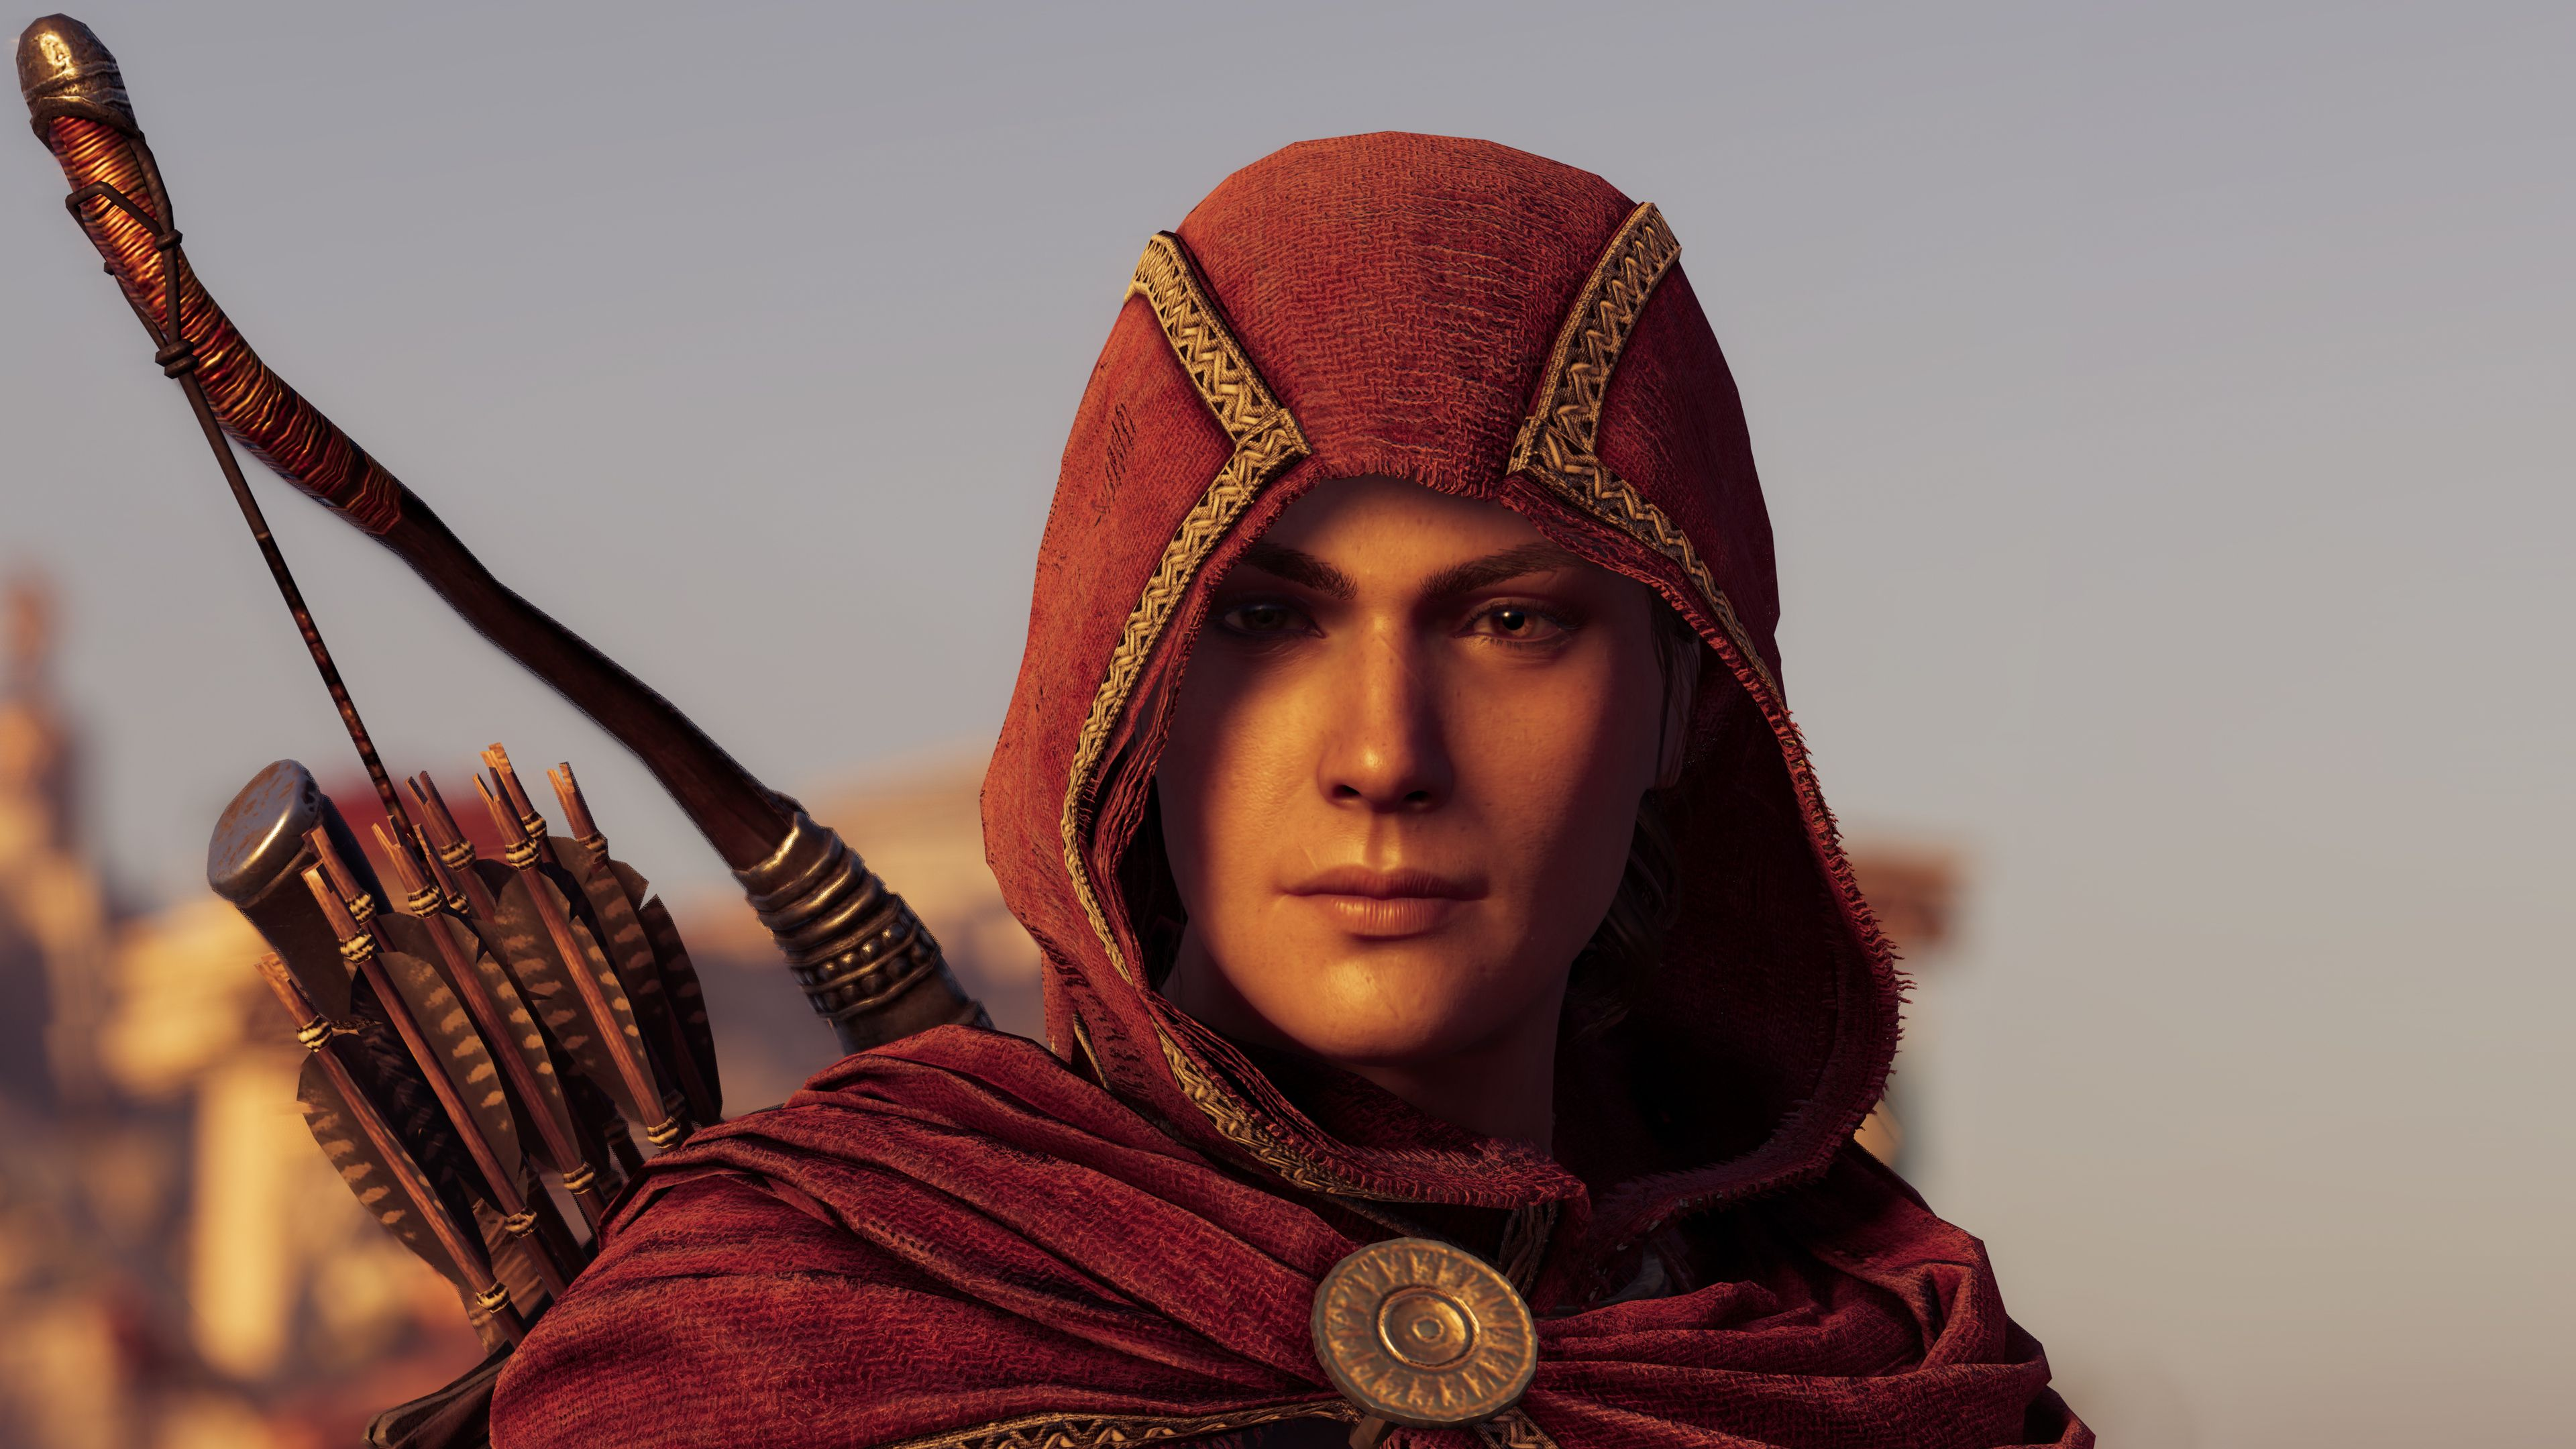 Wallpaper 4k Kassandra In Assassins Creed Odyssey 4k 2018 Games